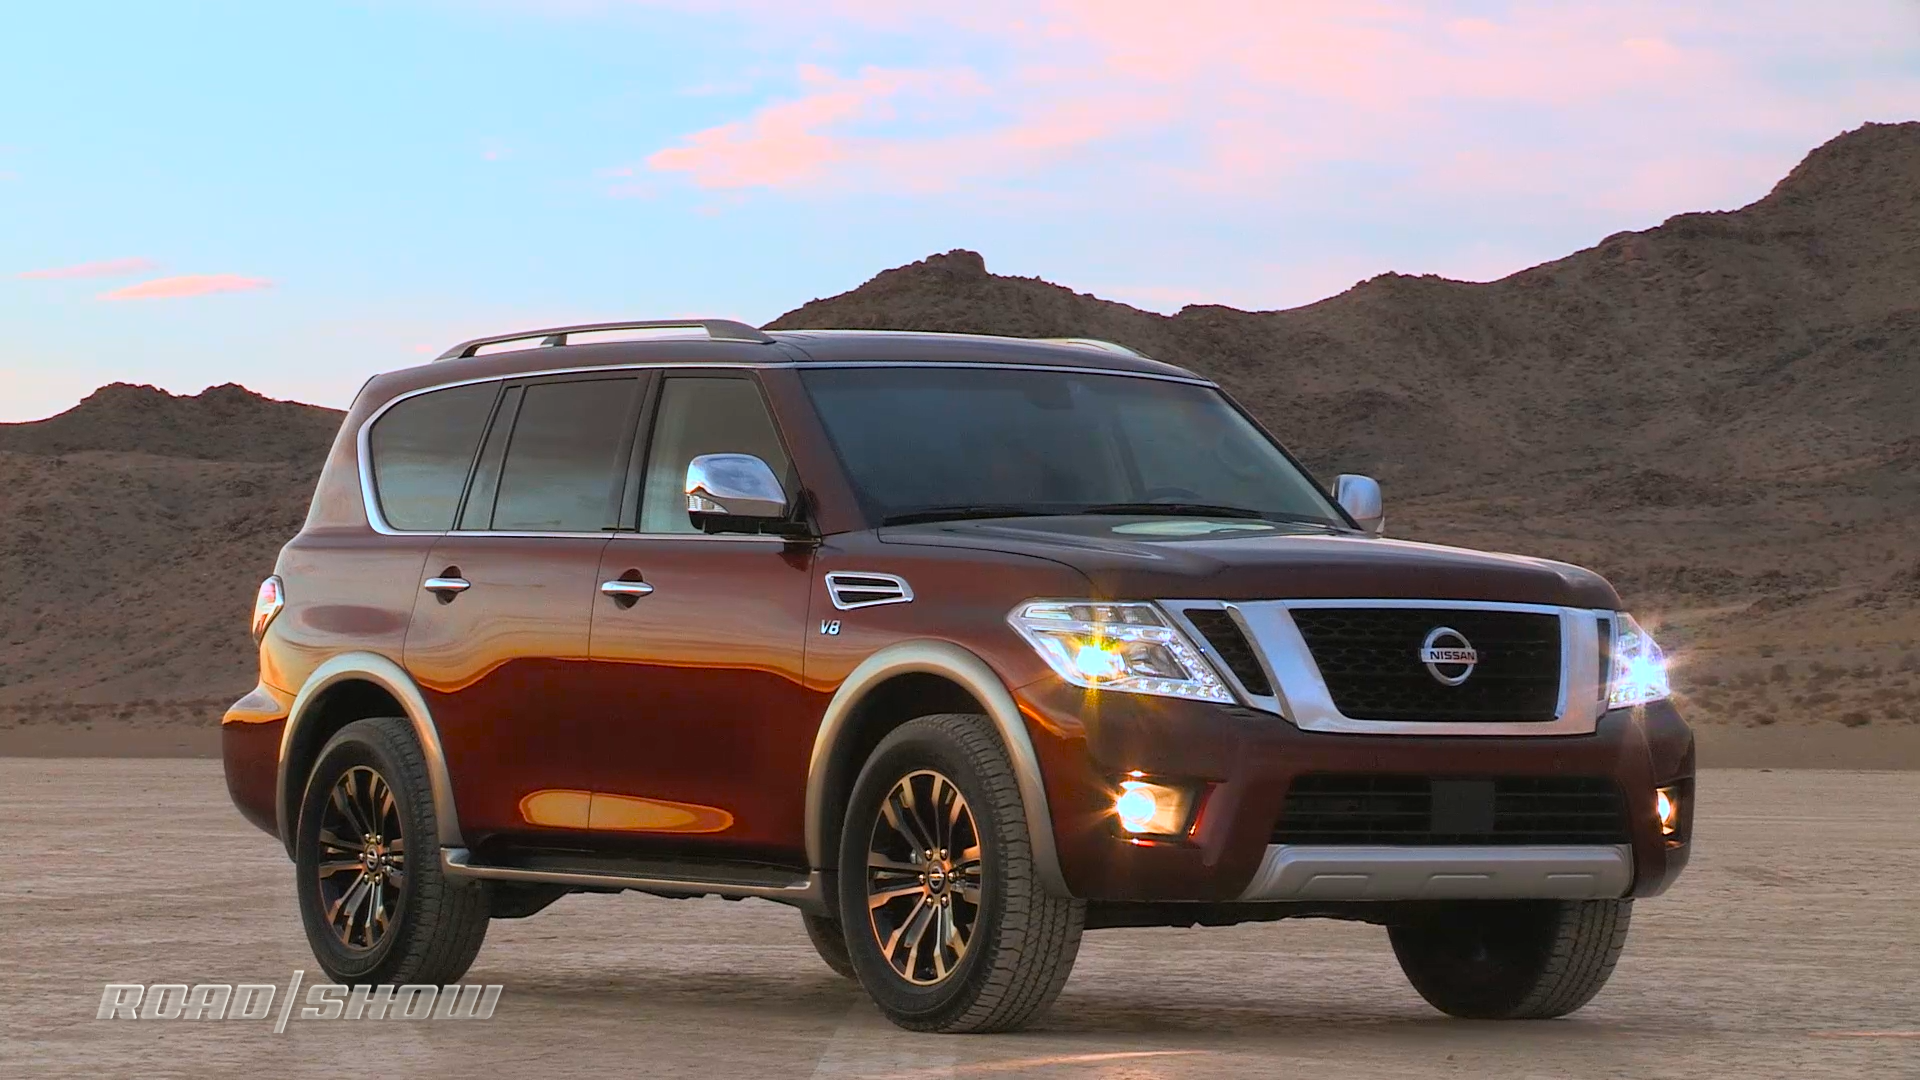 Video: 13 years in the making: Nissan finally brings a new Armada